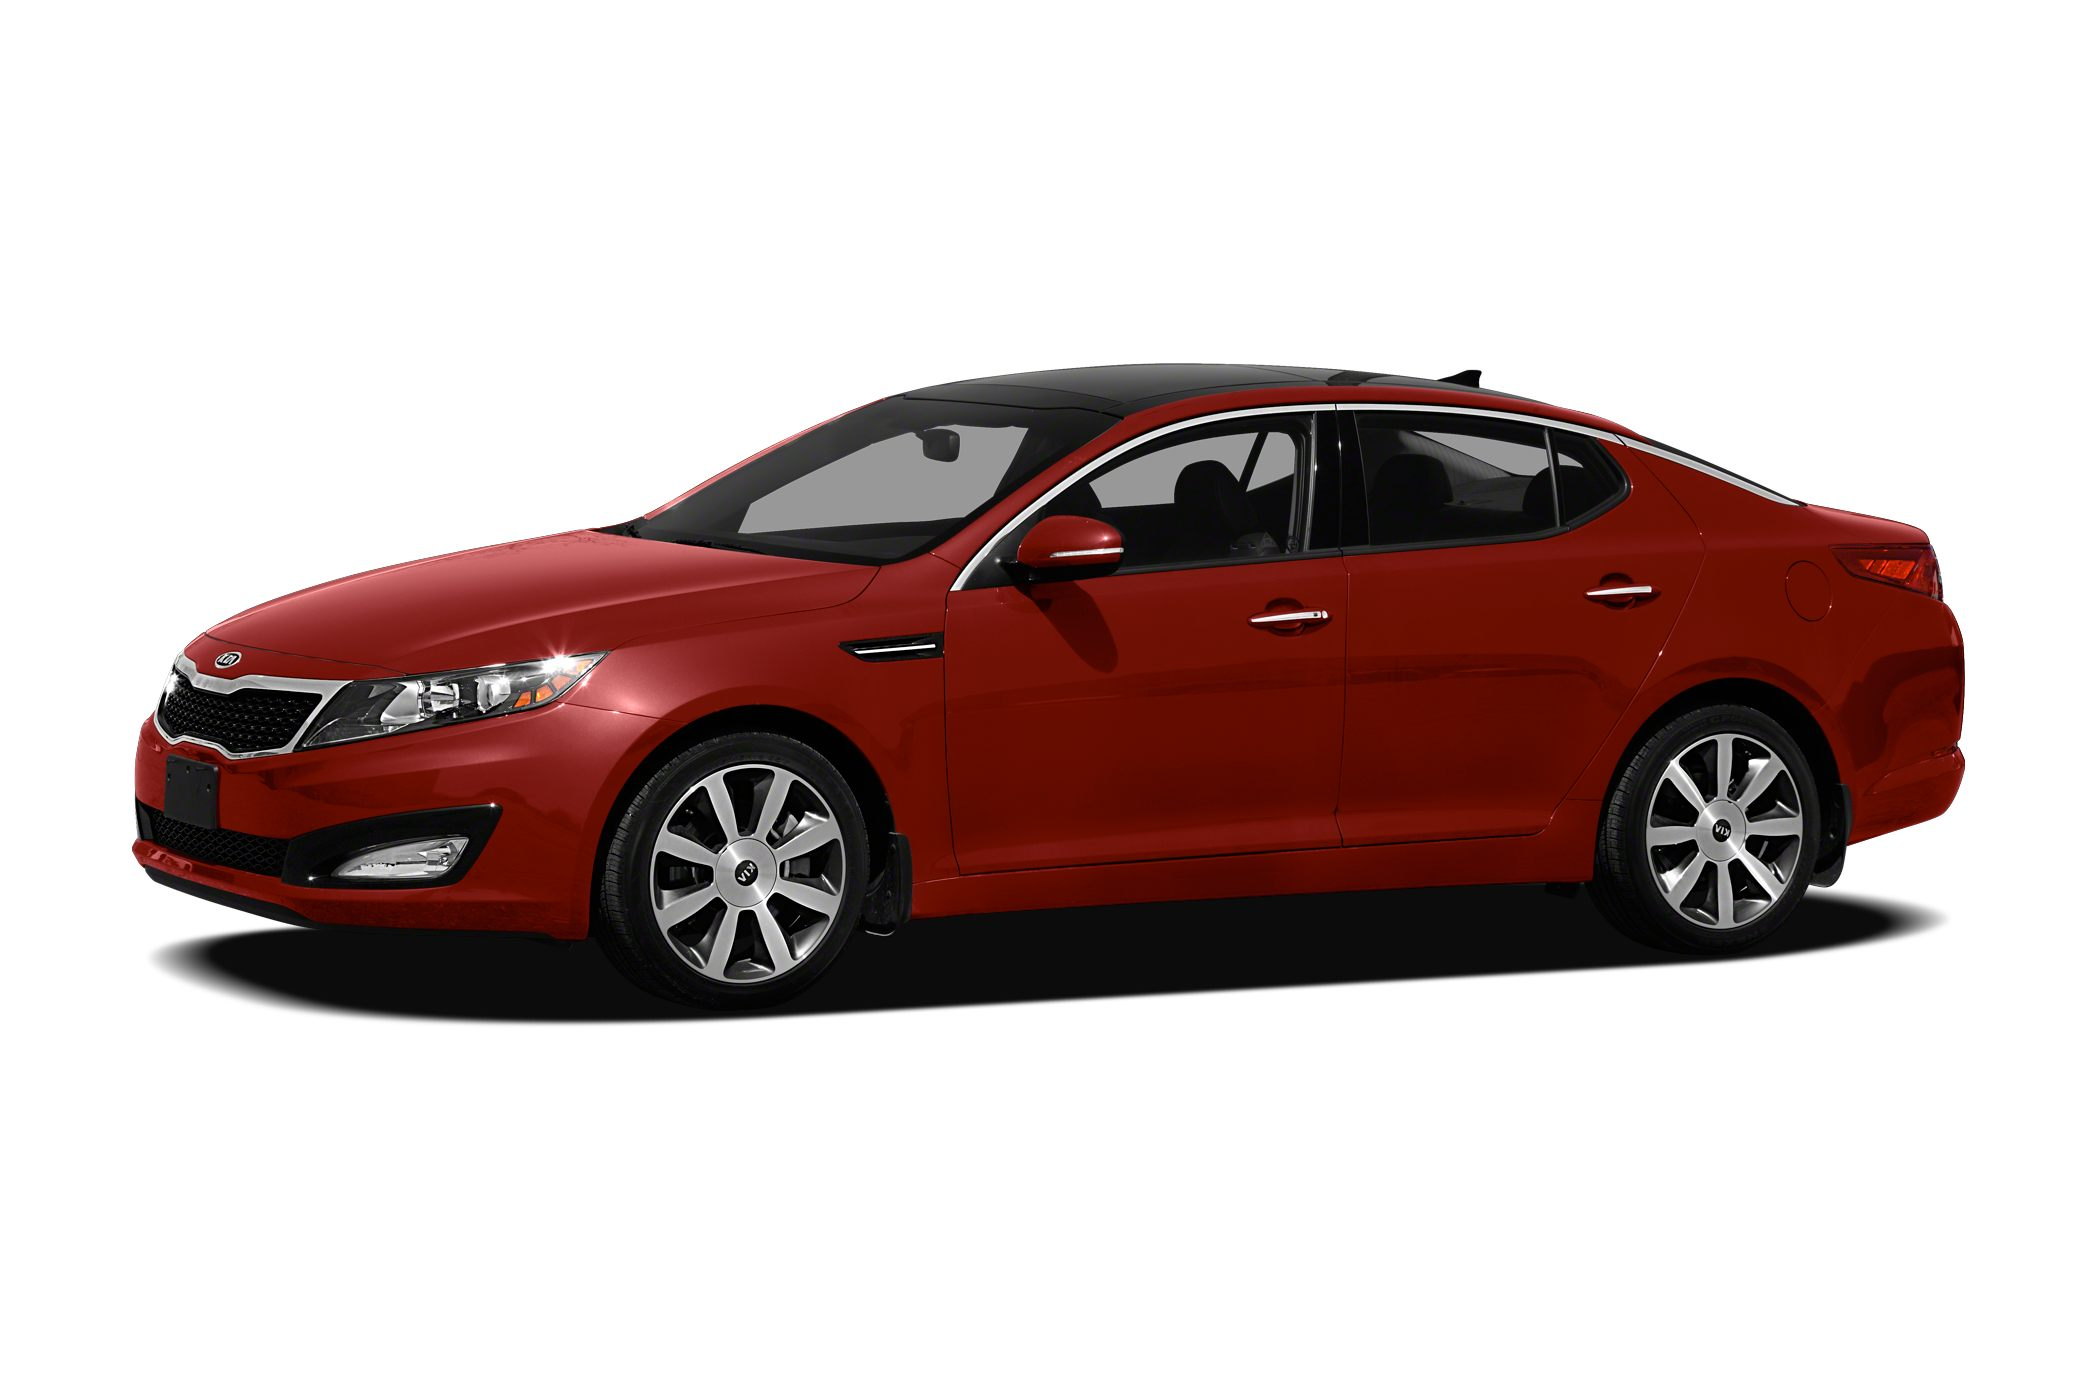 2012 Kia Optima LX Sedan for sale in Waynesboro for $0 with 62,136 miles